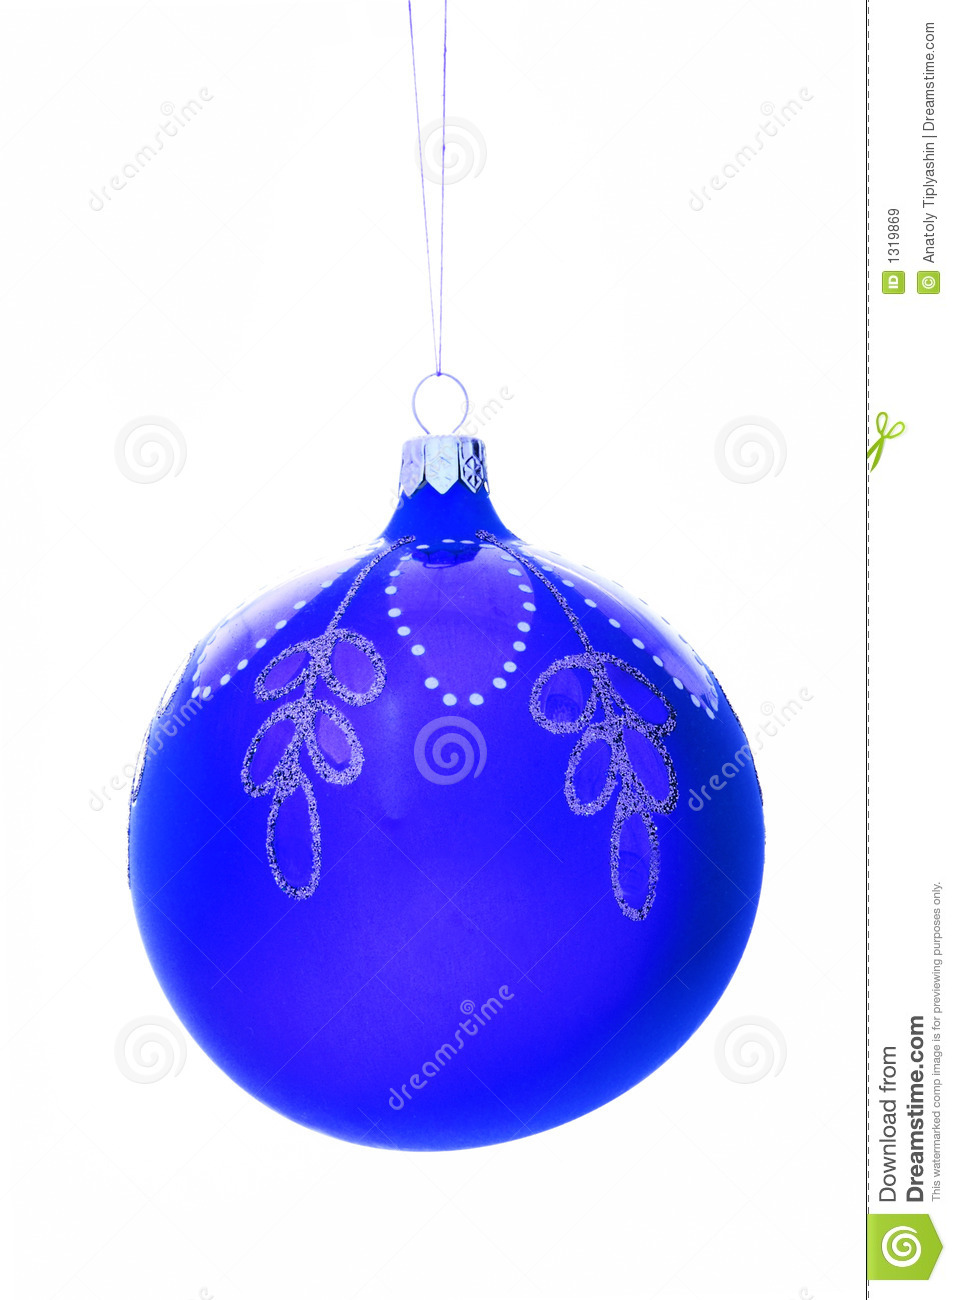 Christmas Tree Ball Placement : Christmas tree decorations ball royalty free stock images